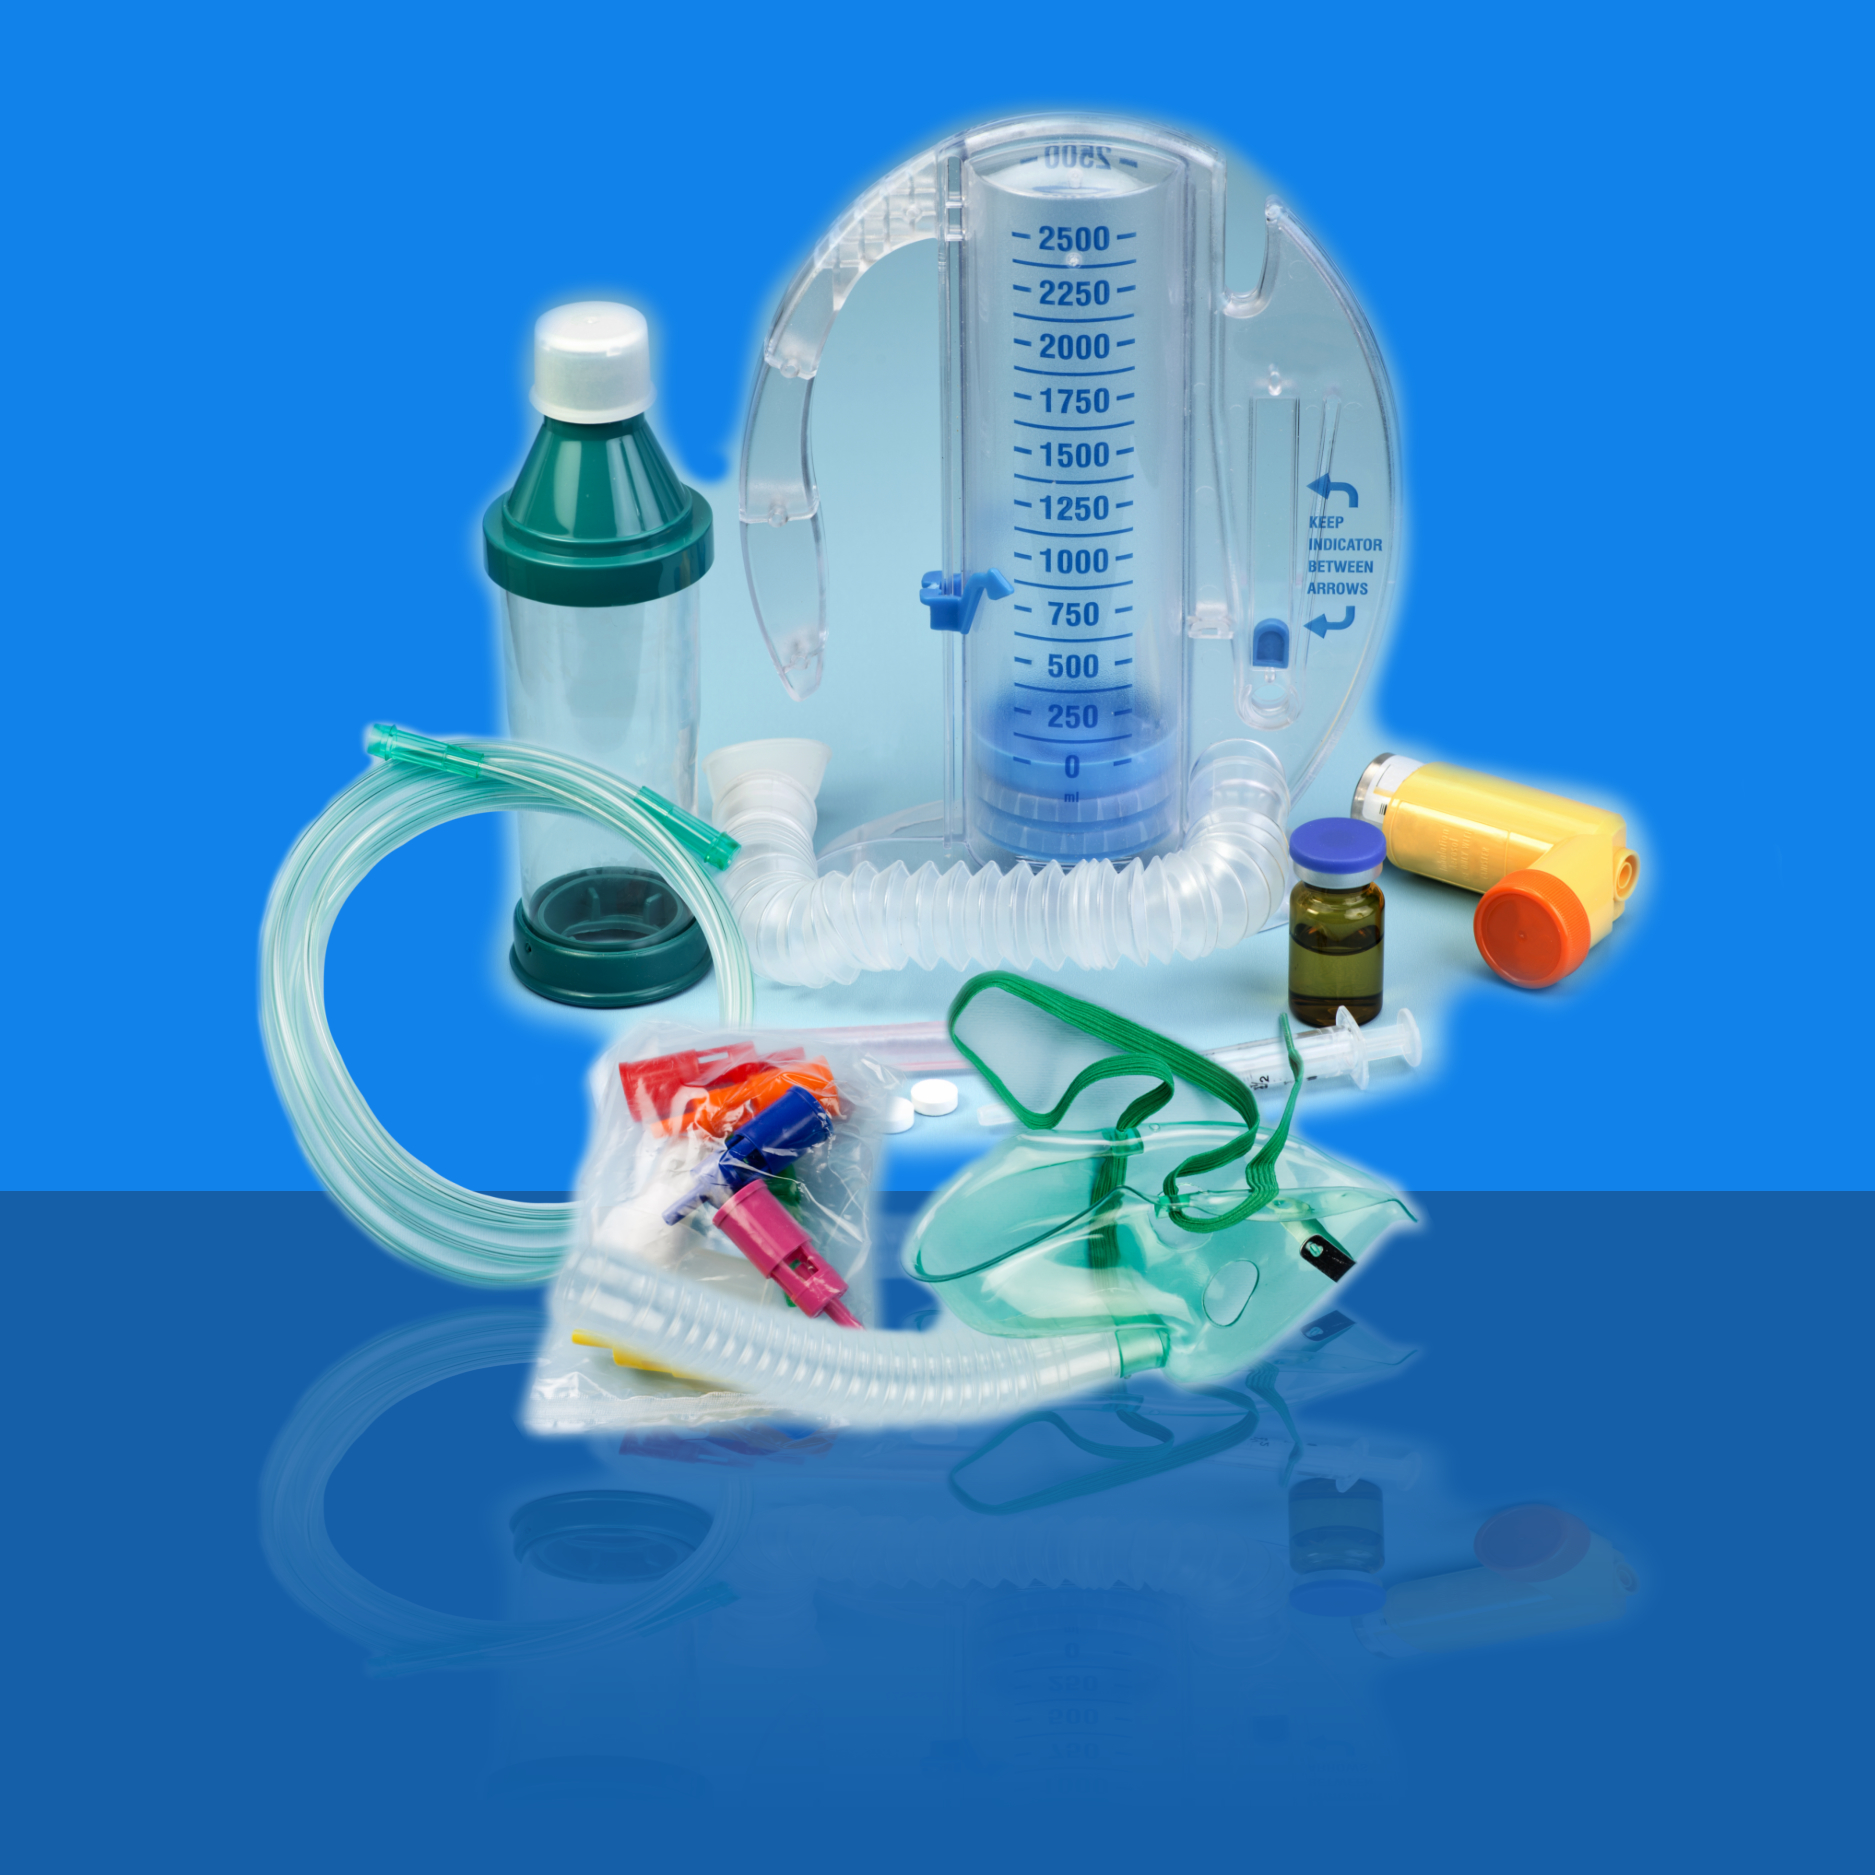 RESPIRATORY THERAPY AND OXYGEN